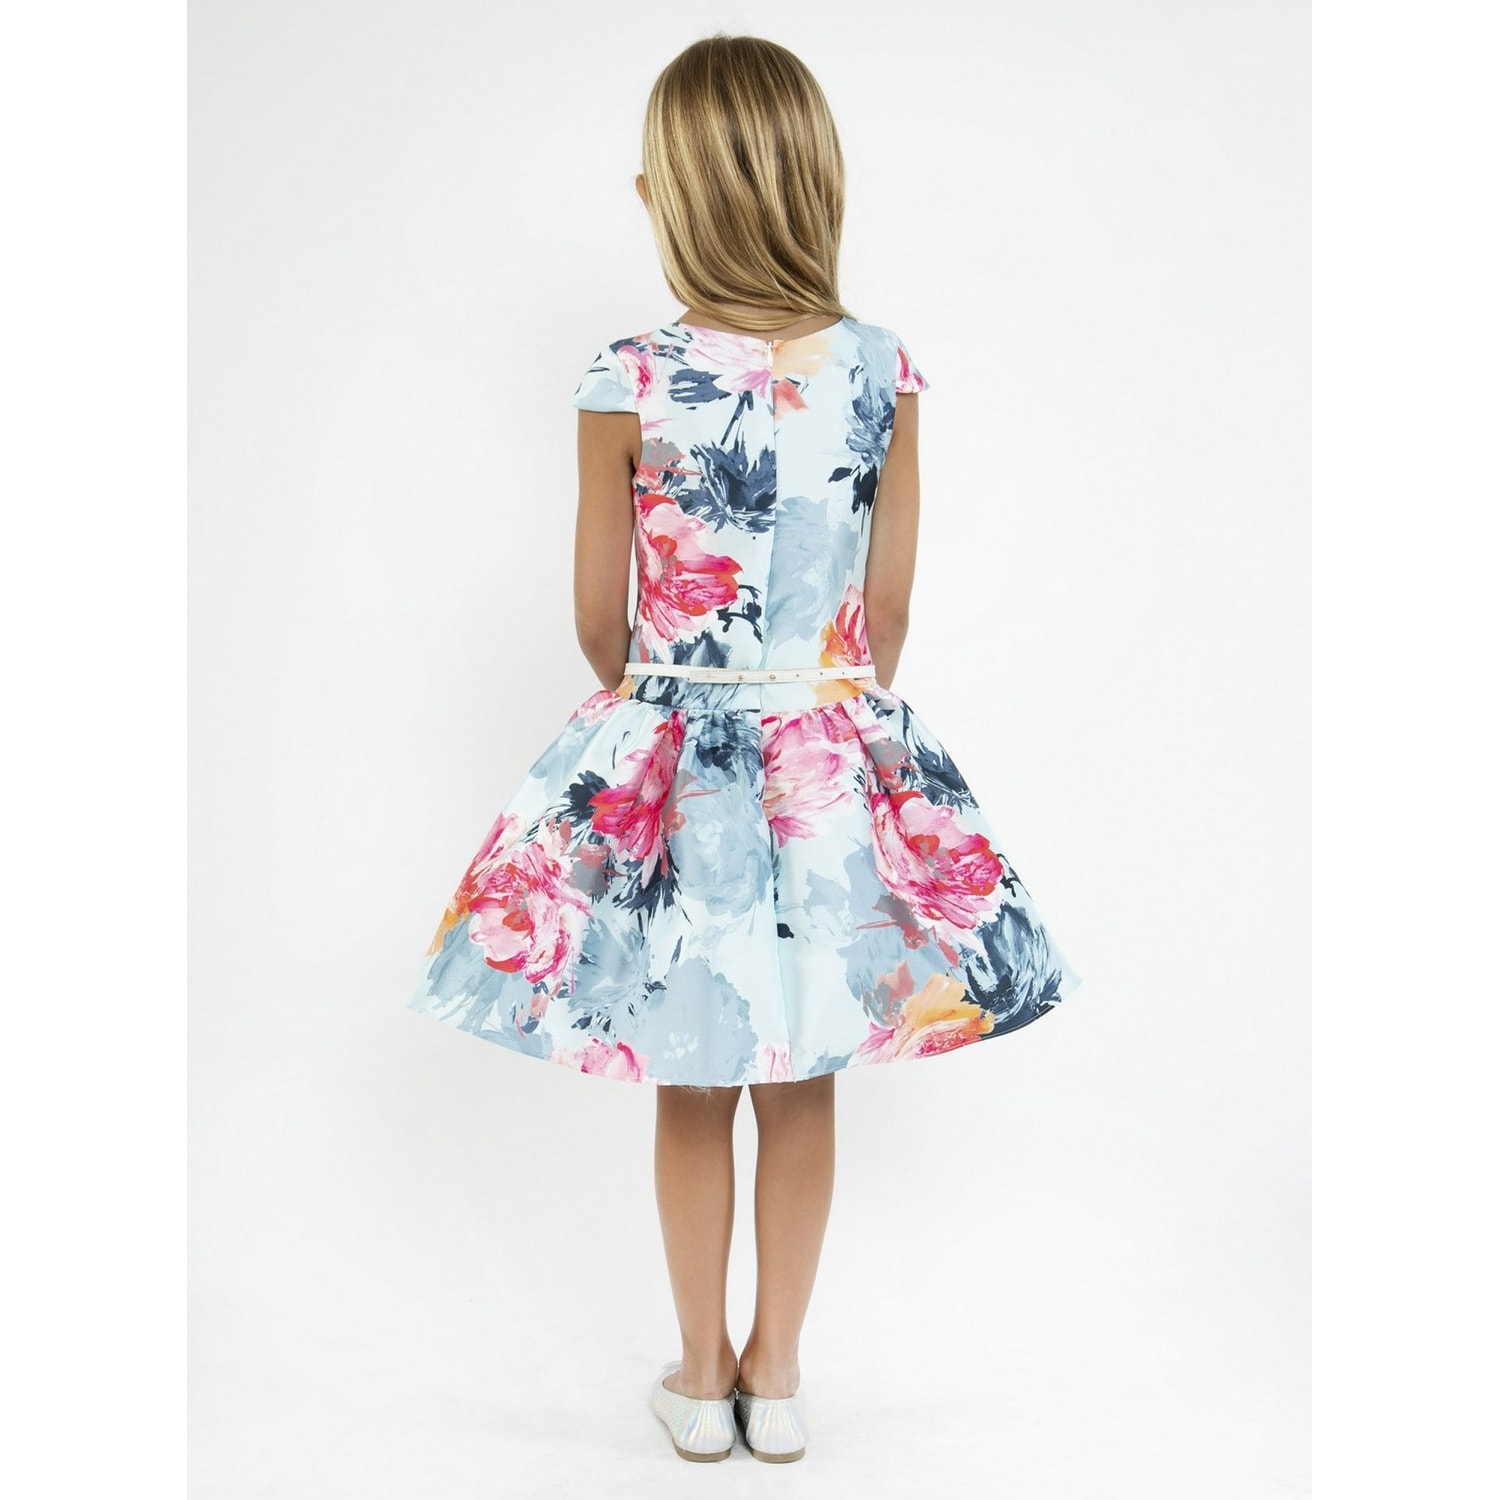 b911ee8d337 Shop Kids Dream Girls Baby Blue Floral Mikado Junior Bridesmaid Dress -  Free Shipping Today - Overstock - 23159691